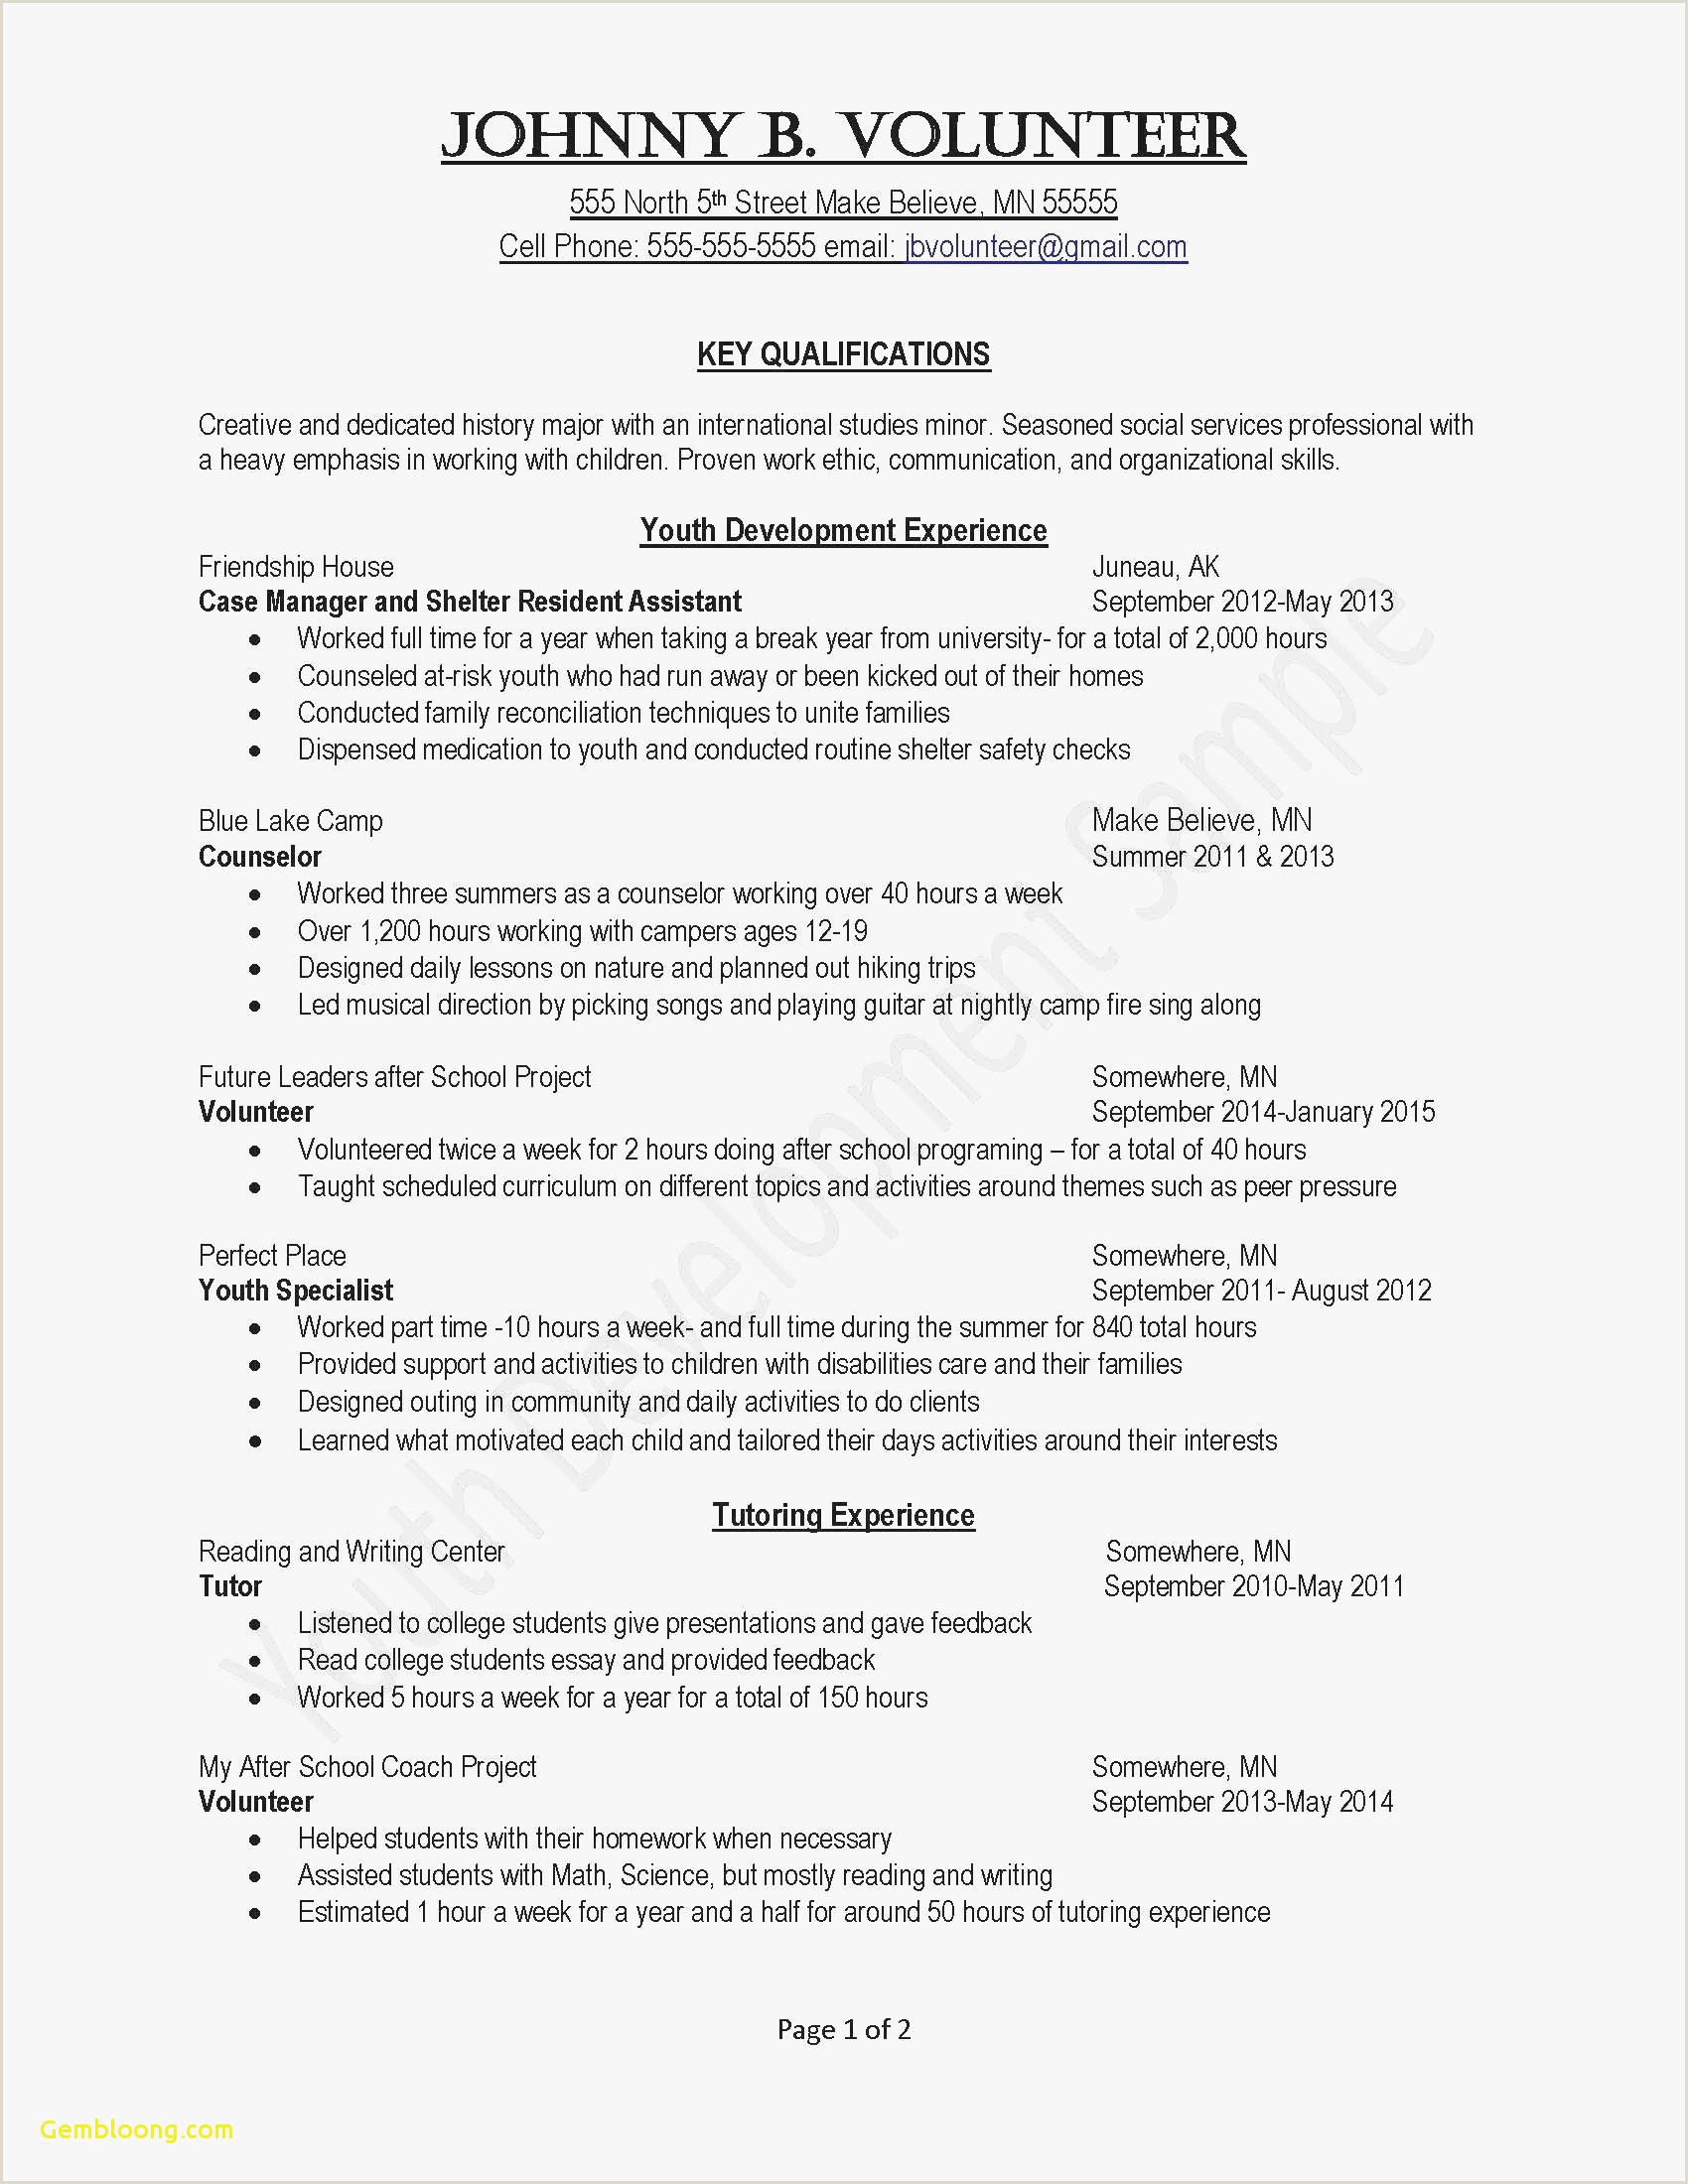 Professional Cv format with Picture Client Infographic – ¢Ë†Å¡ Resume format for It Professional